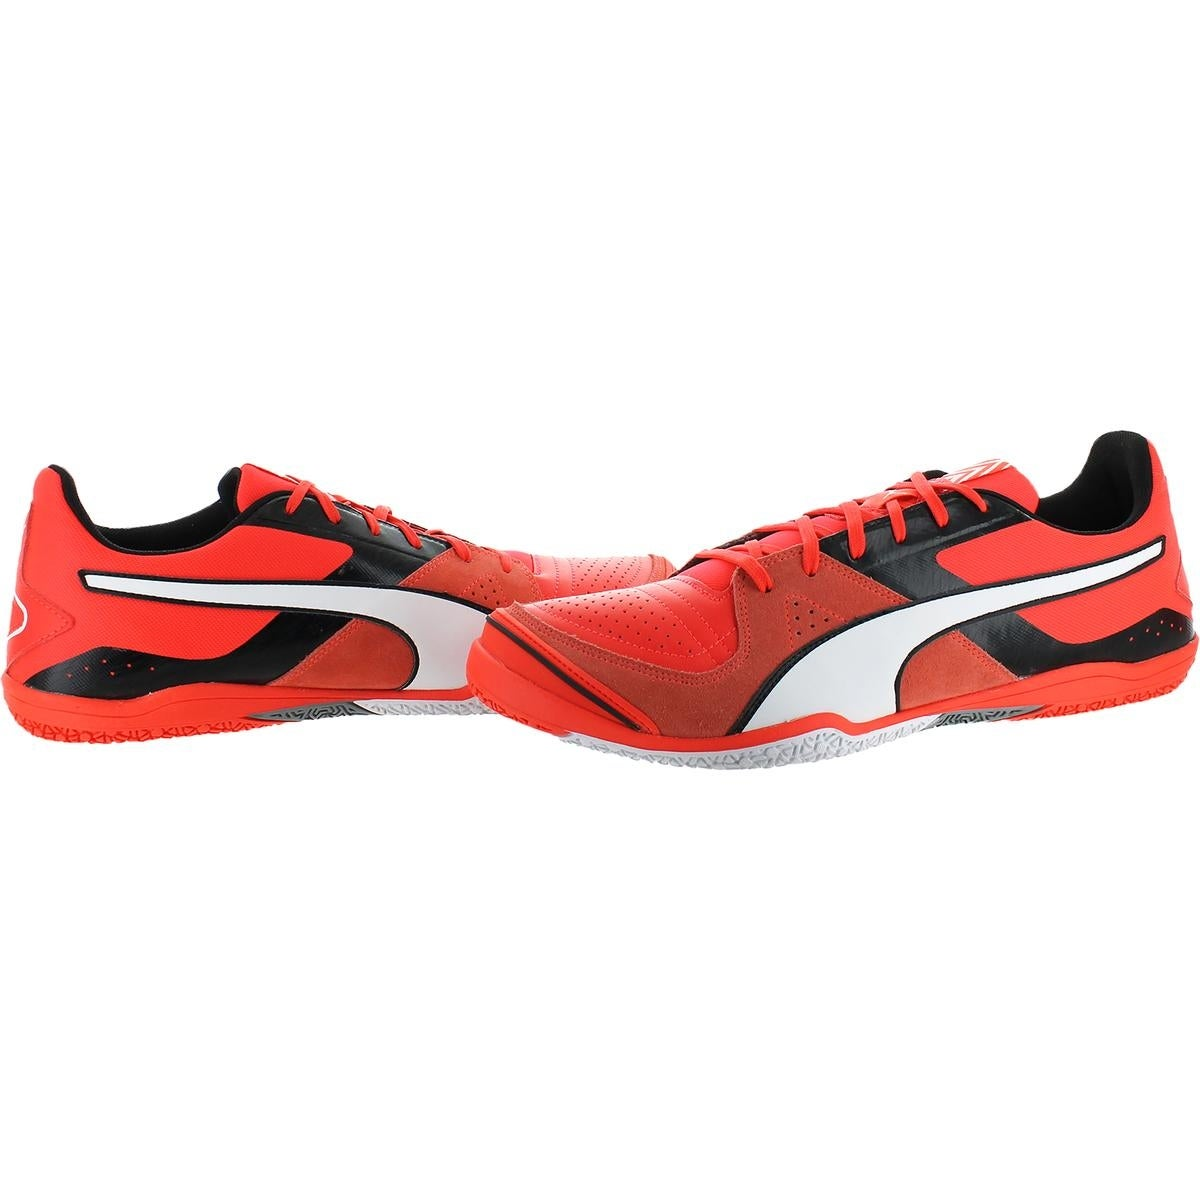 5337c3d78018 Shop Puma Mens Invicto Sala Soccer Shoes Suede Non-Marking Pink 9 Medium  (D) - 9 medium (d) - Free Shipping Today - Overstock - 22123061